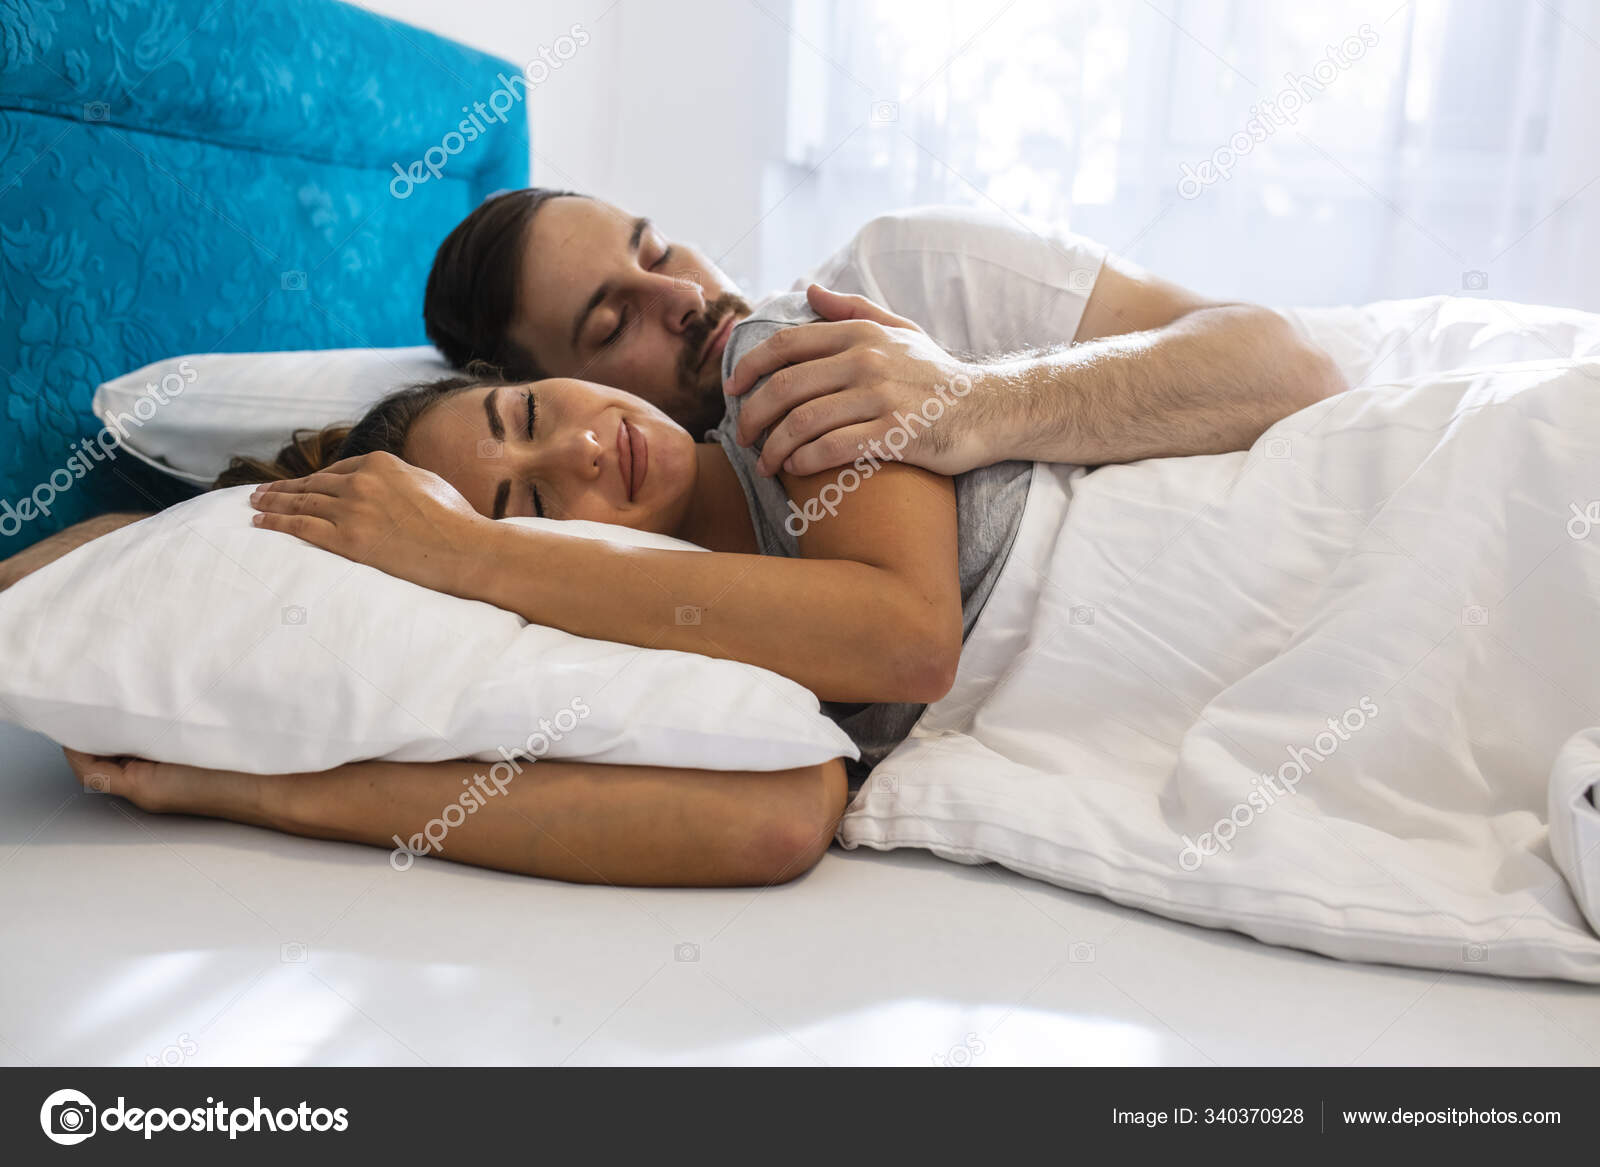 Young Cute Couple Sleeping Together Bed Happy Couple Sleeping Comfortable Stock Photo C Dragana Stock Gmail Com 340370928